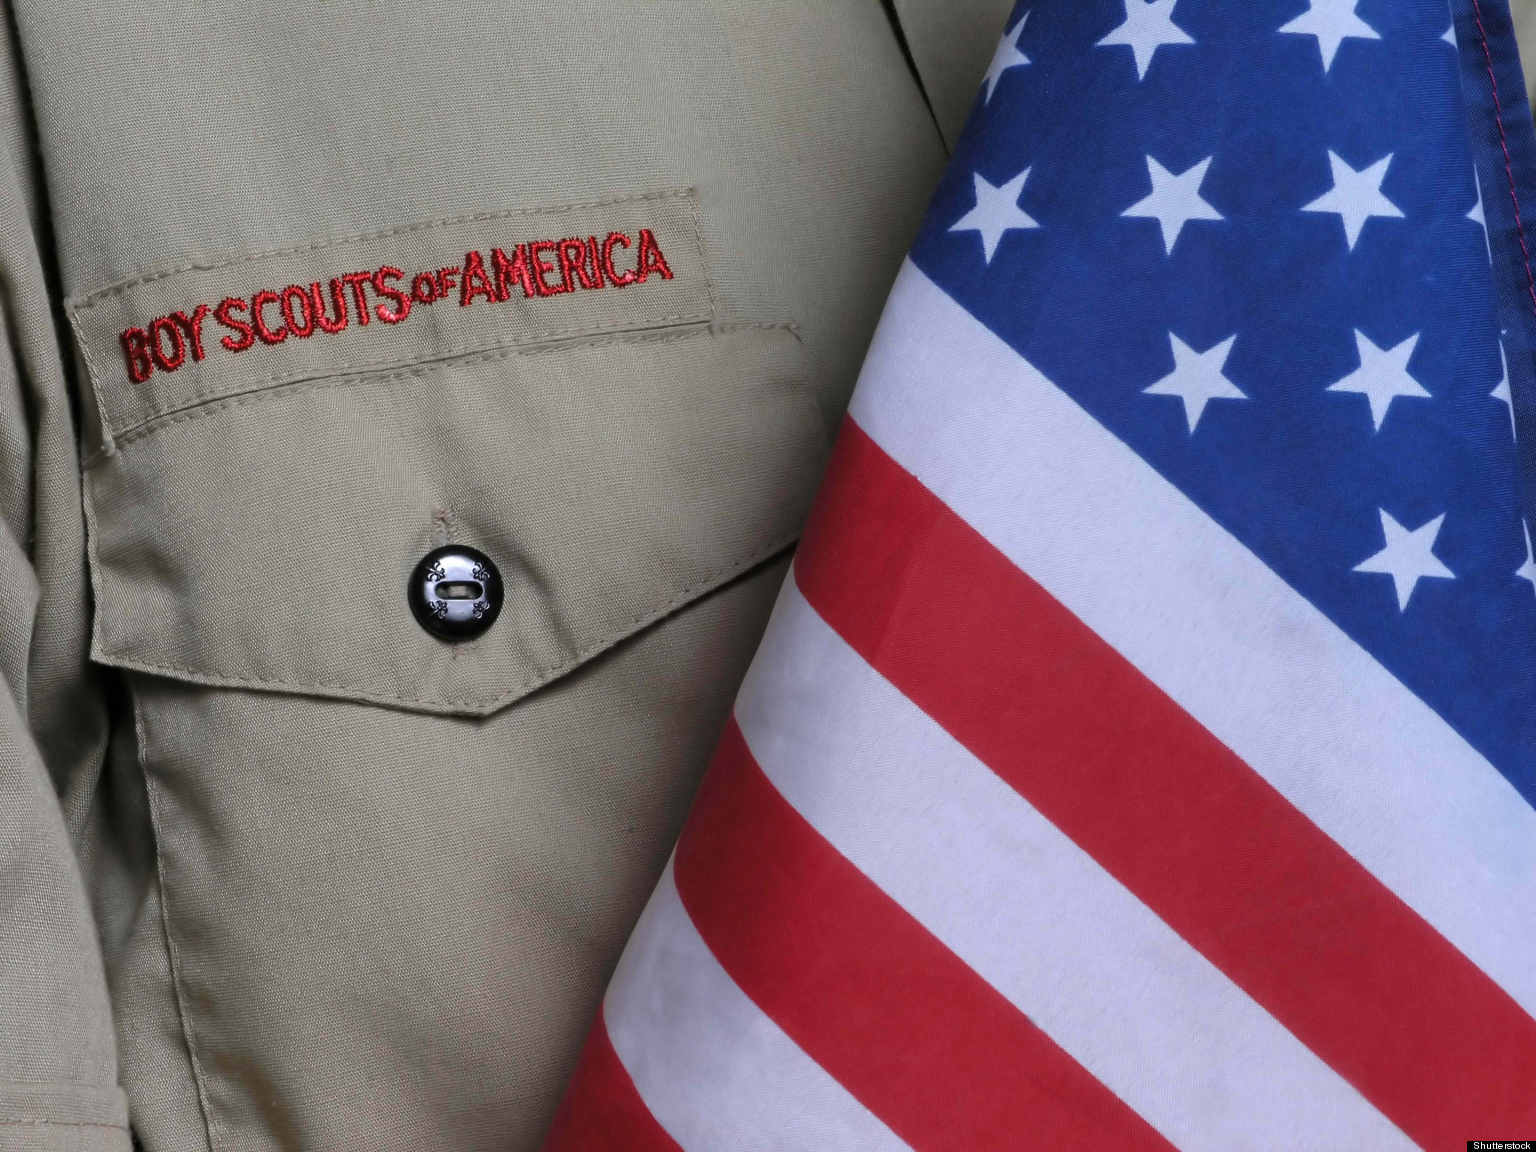 Not The Boy Scouts Of My America